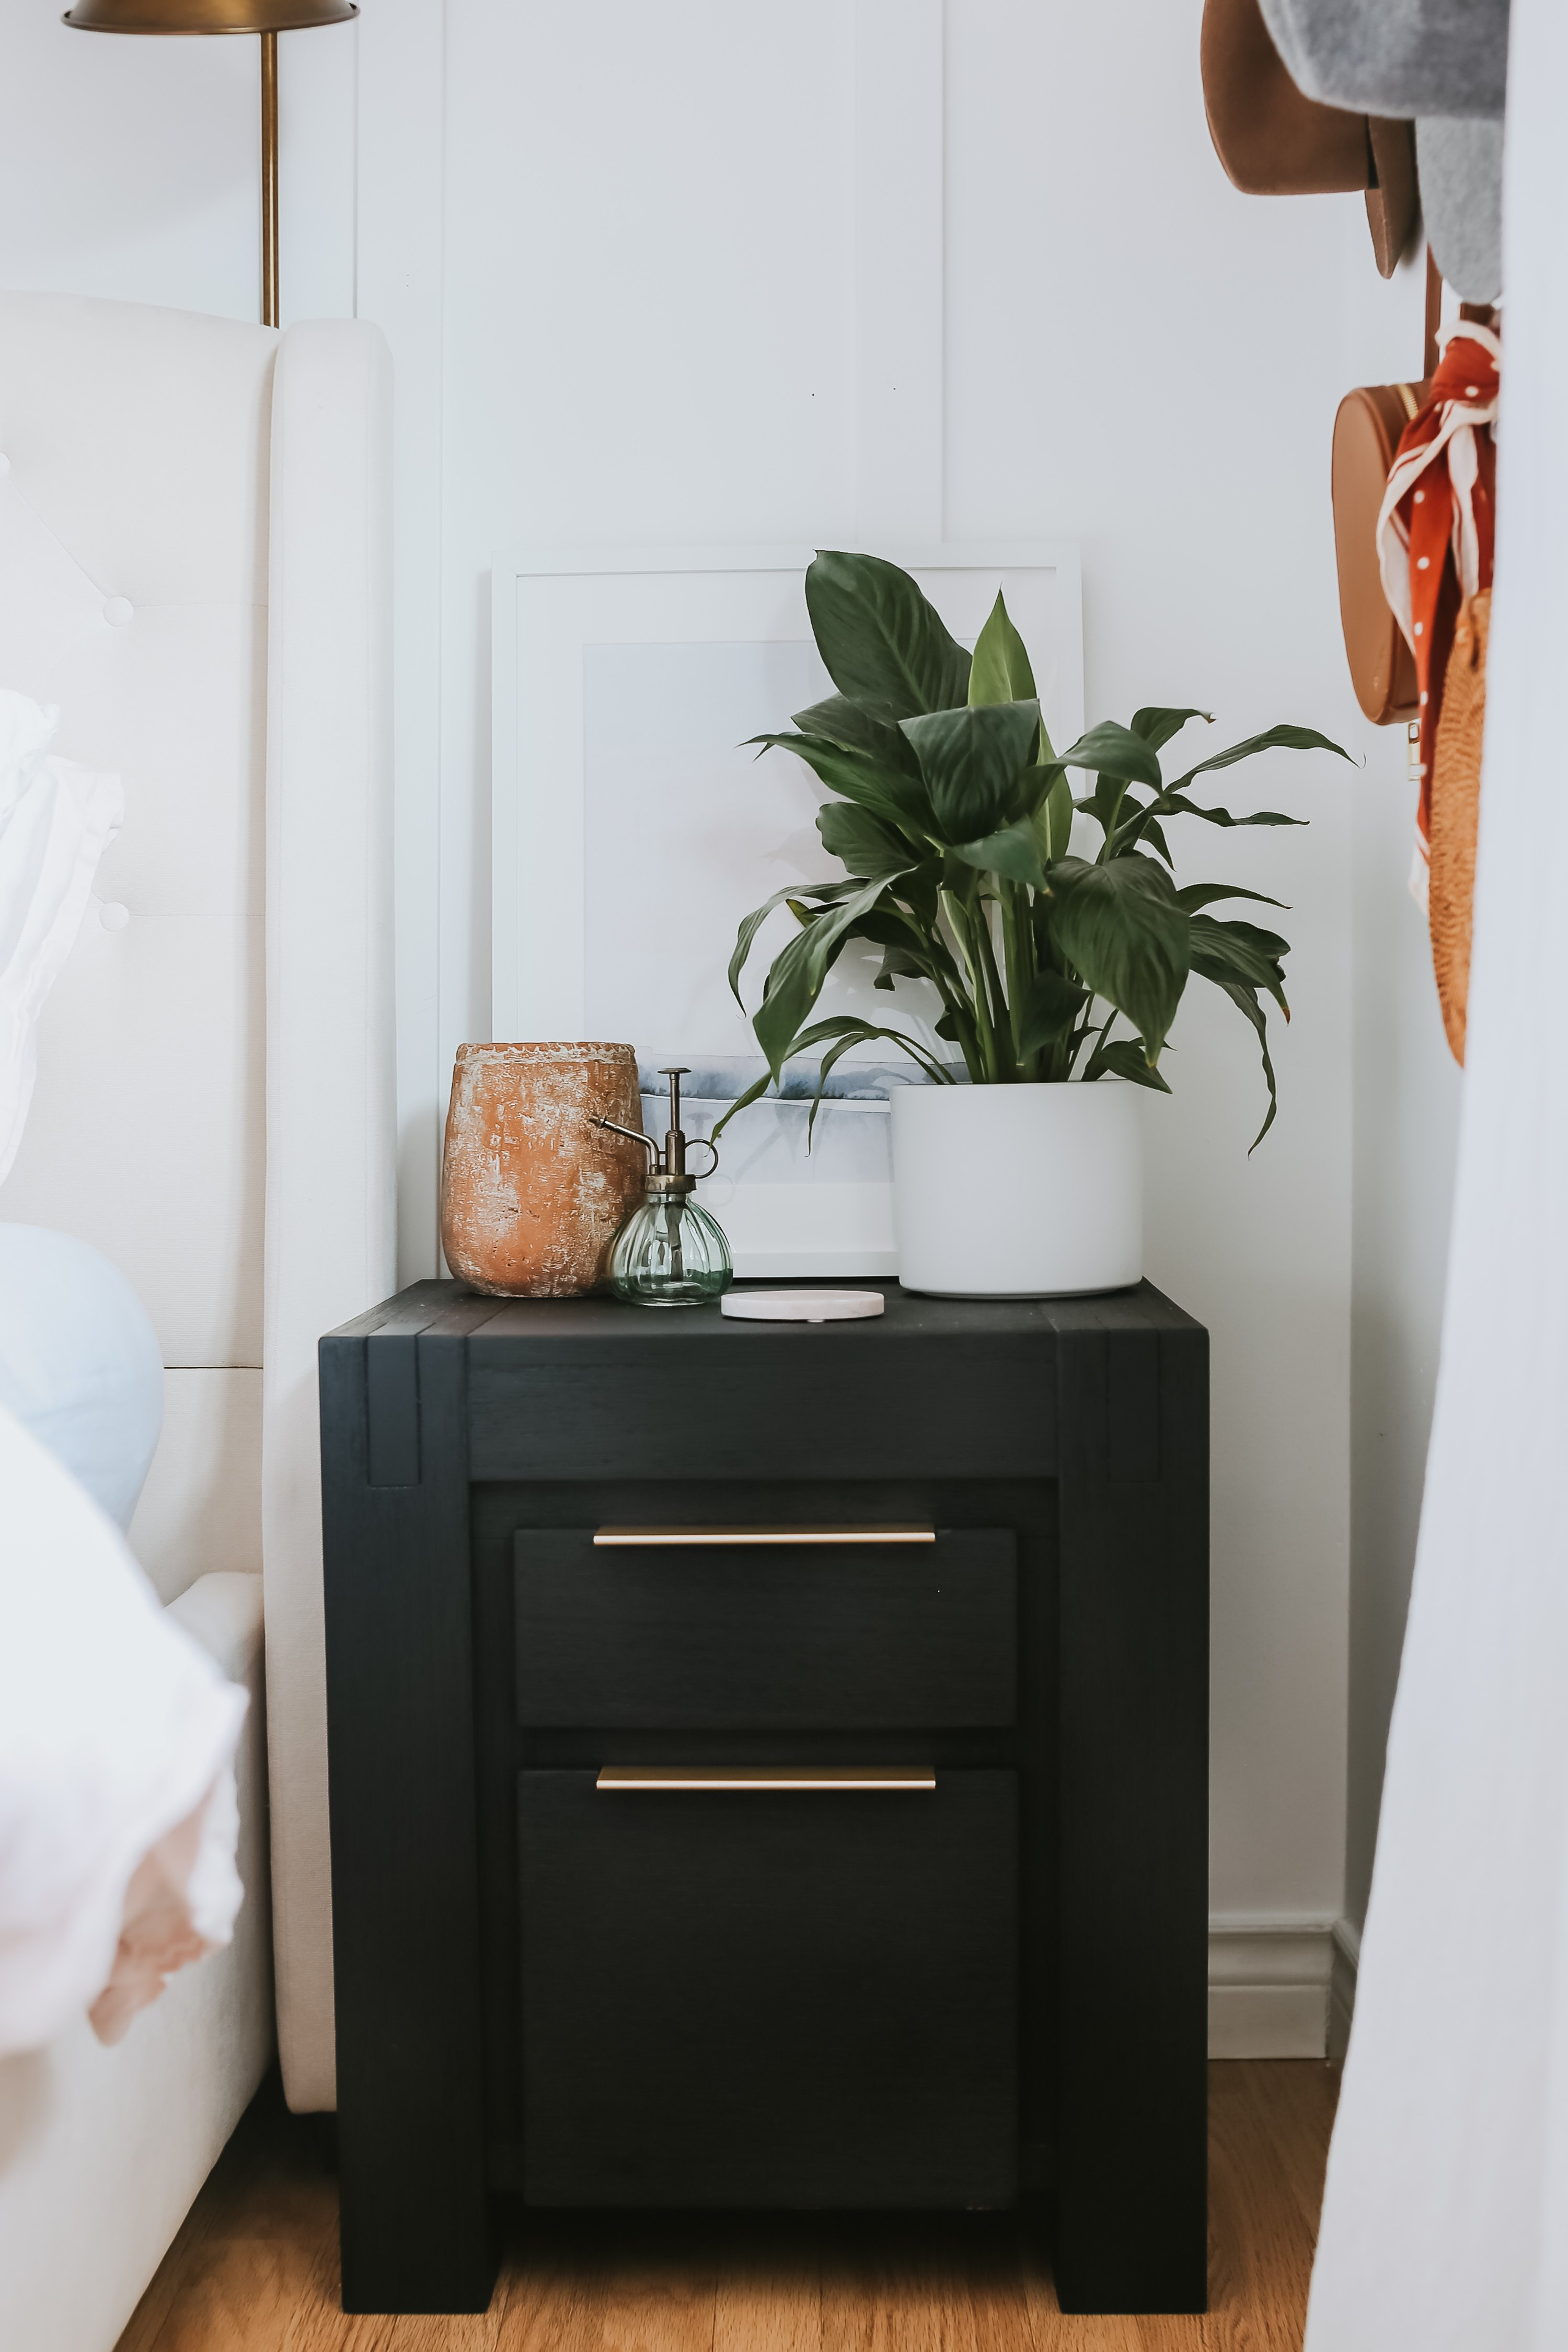 Painted Black SideTables - Easy DIY. Also A Paint Store that does curbside delivery if you can't get out. The Finish and Colour I used